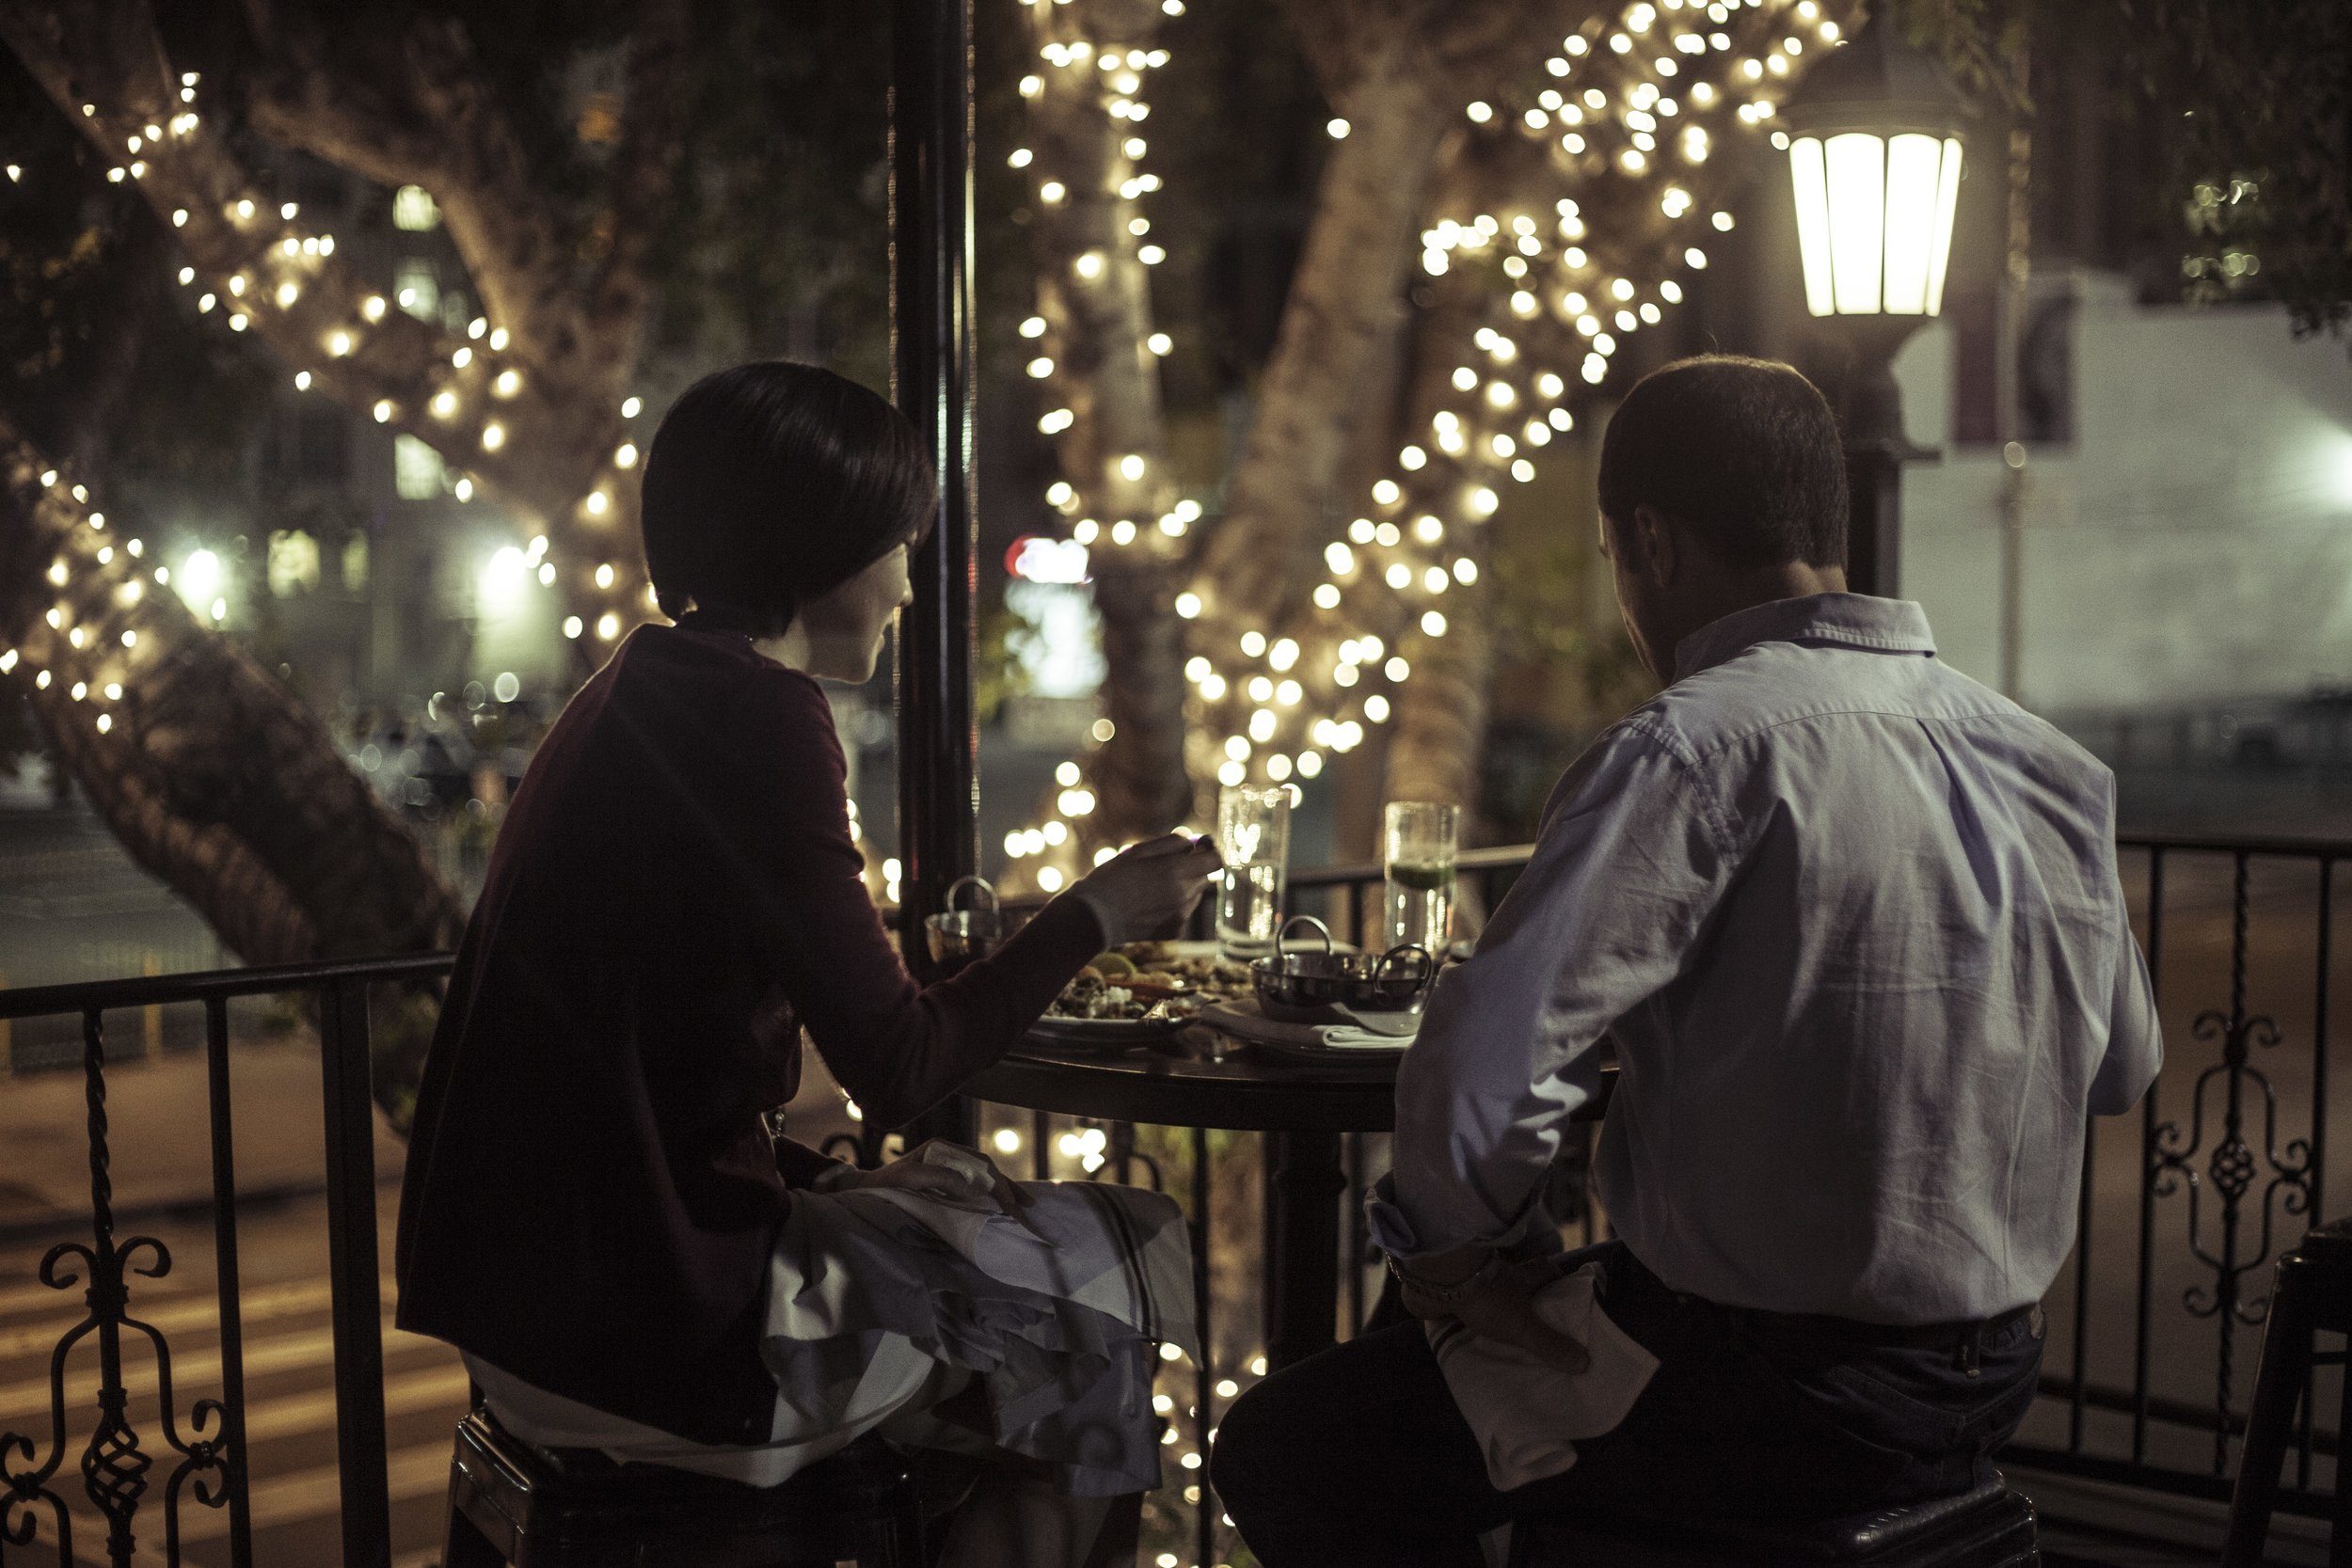 Couple Dining on Balcony at night